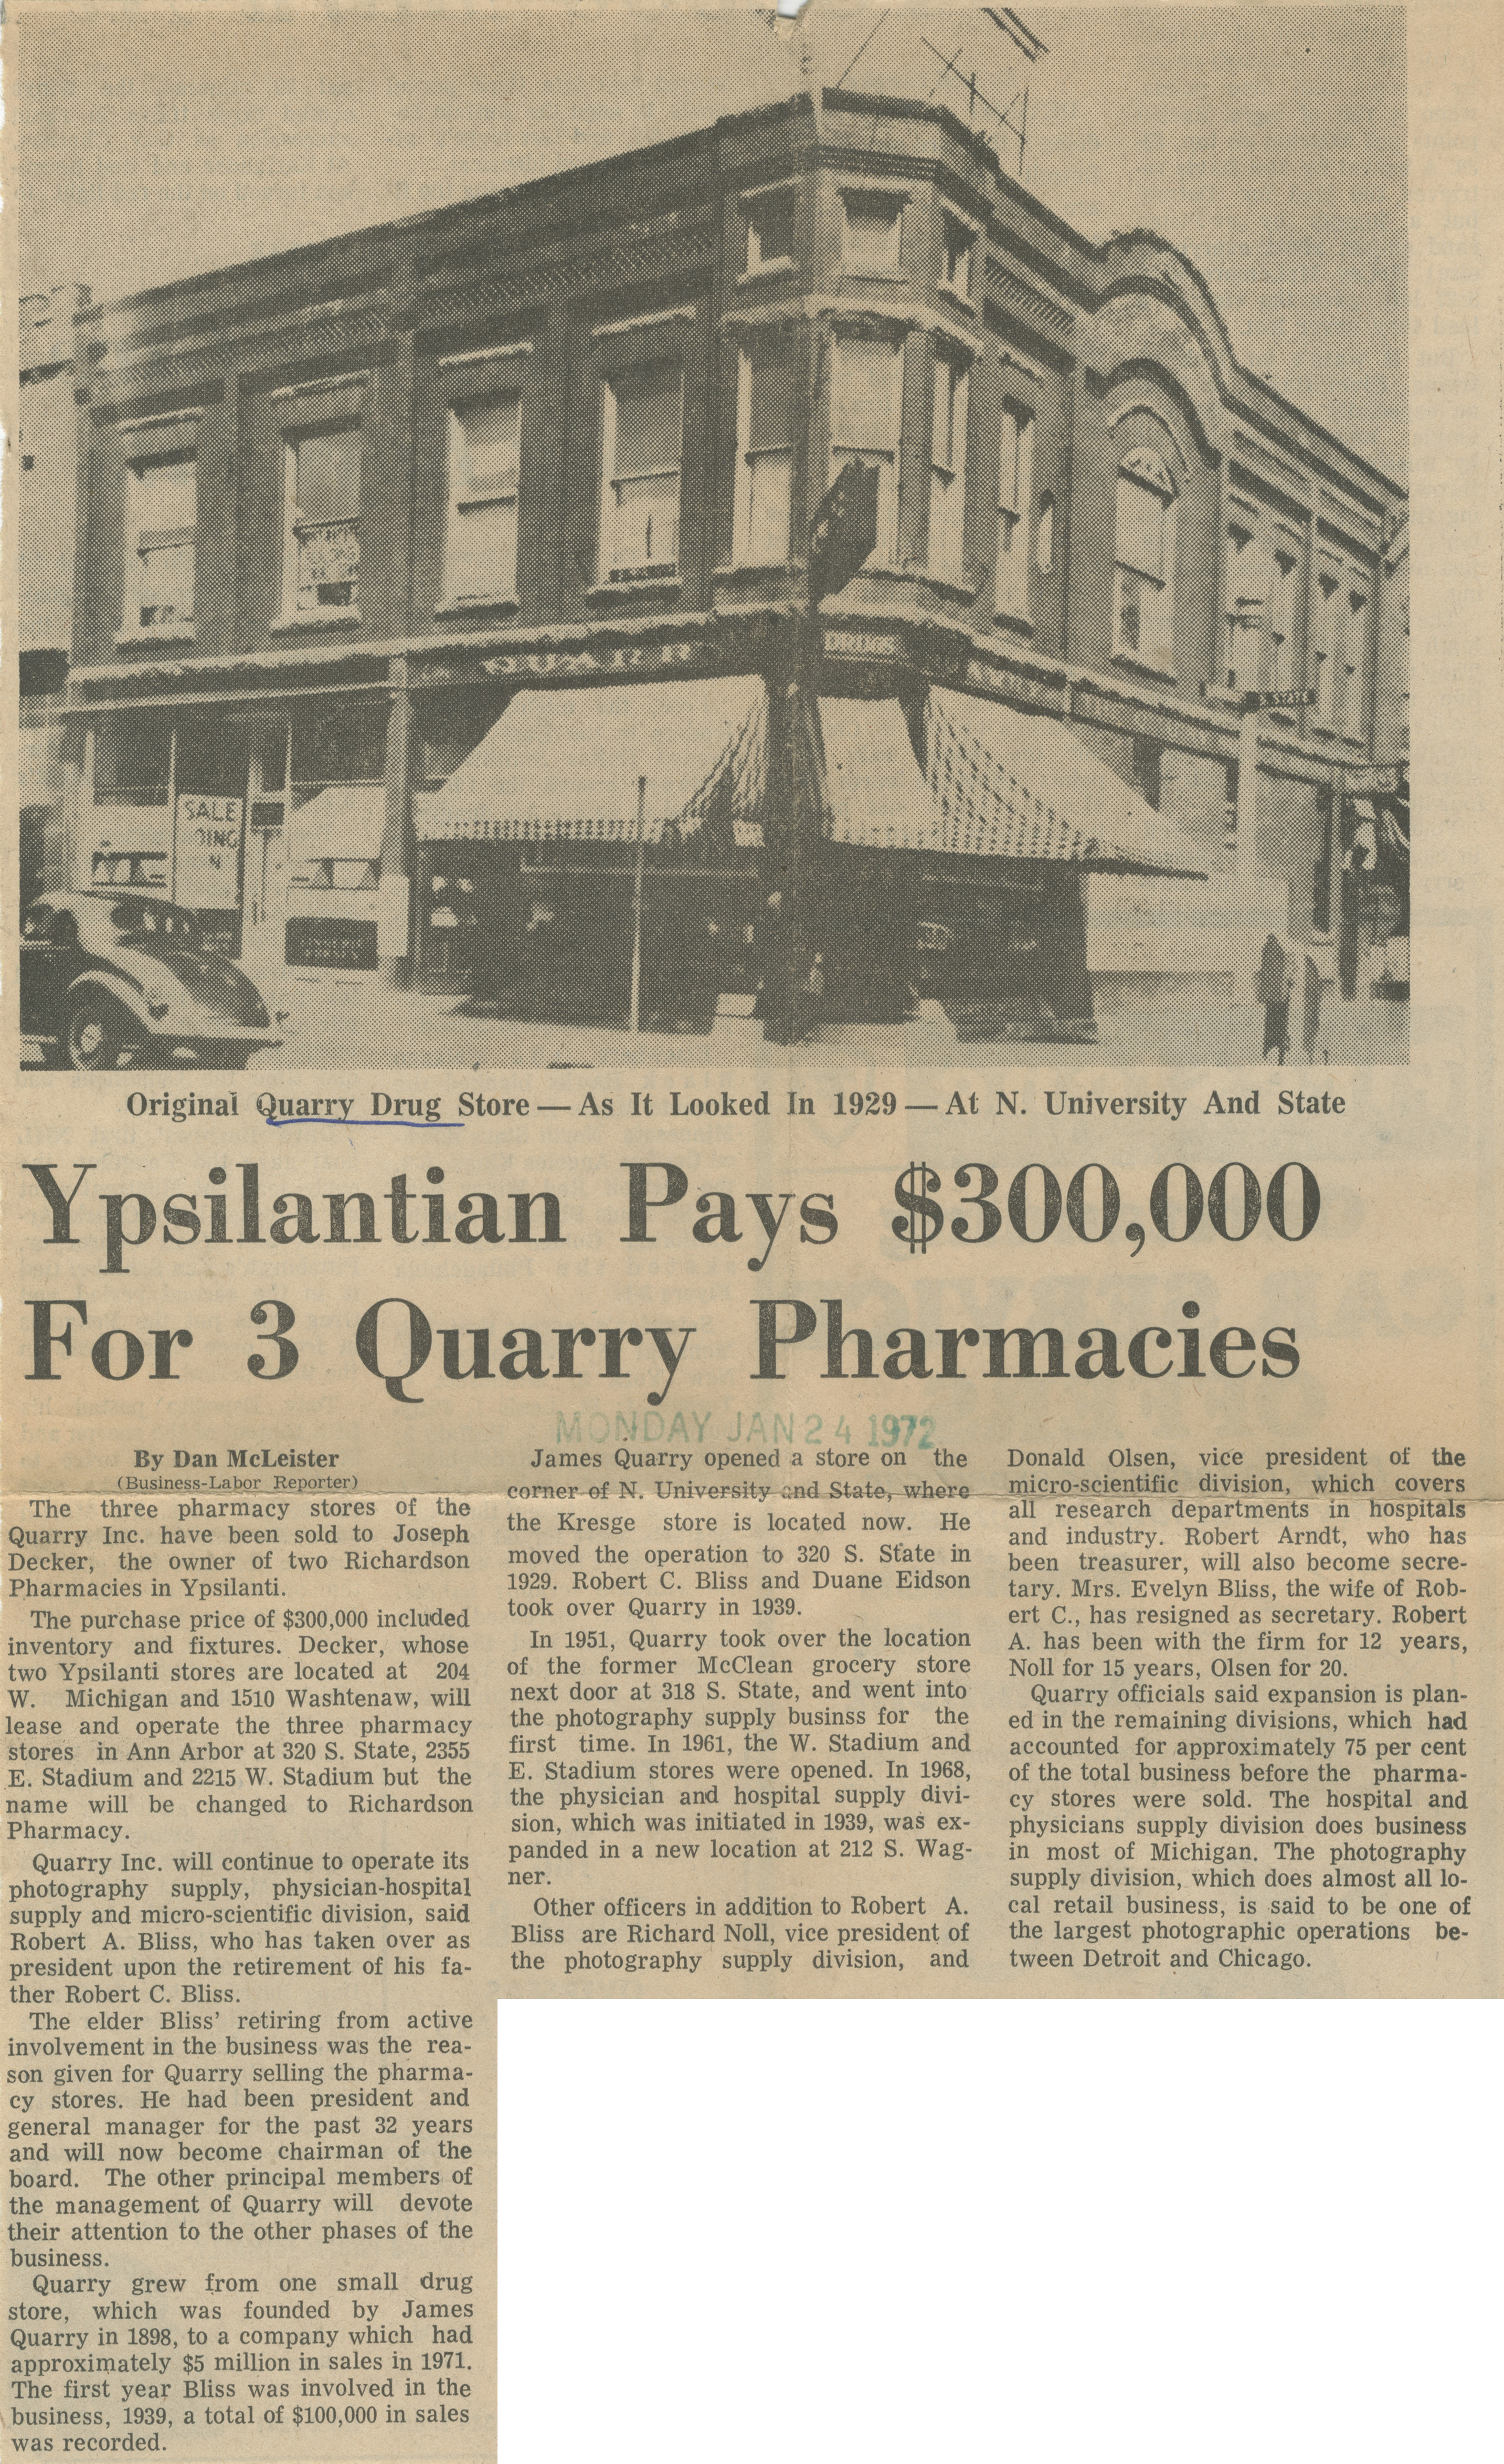 Ypsilantian Pays $300,000 For 3 Quarry Pharmacies image